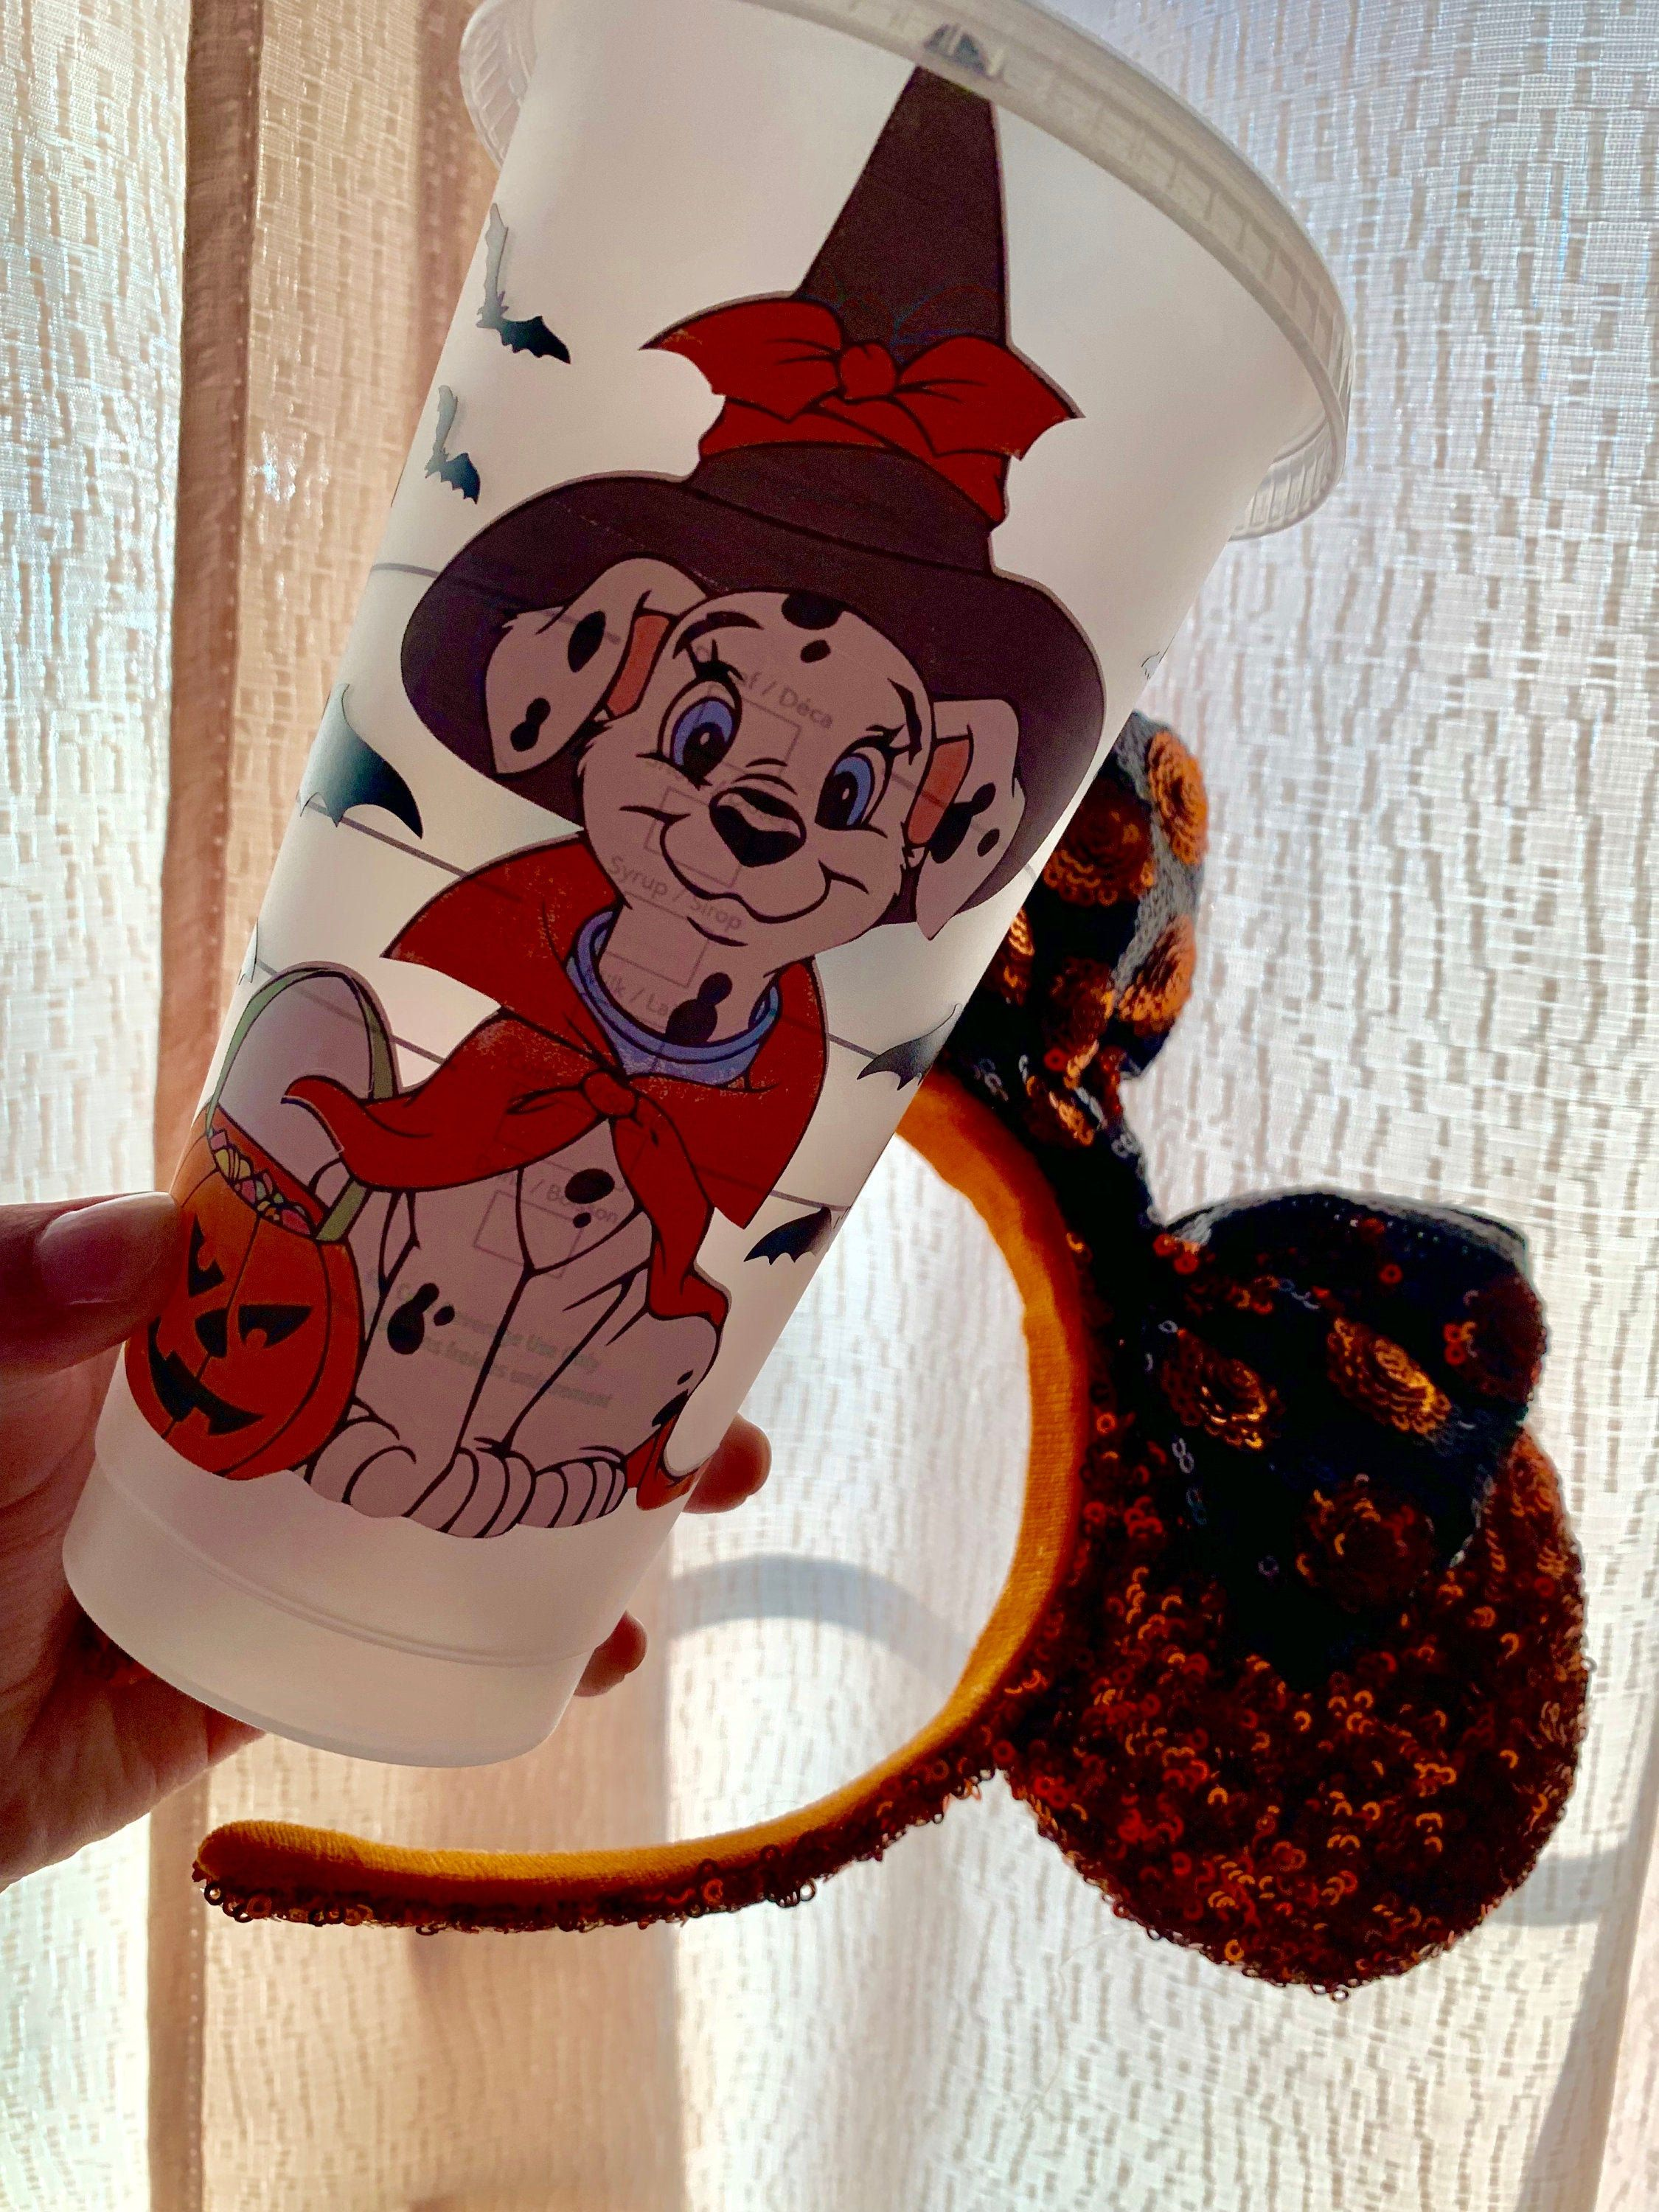 The united states customary cup holds 8 fluid ounces. 101 Dalmation Halloween Cup/ Halloween cups/ Disney Halloween | Etsy in 2021 | Halloween cups ...